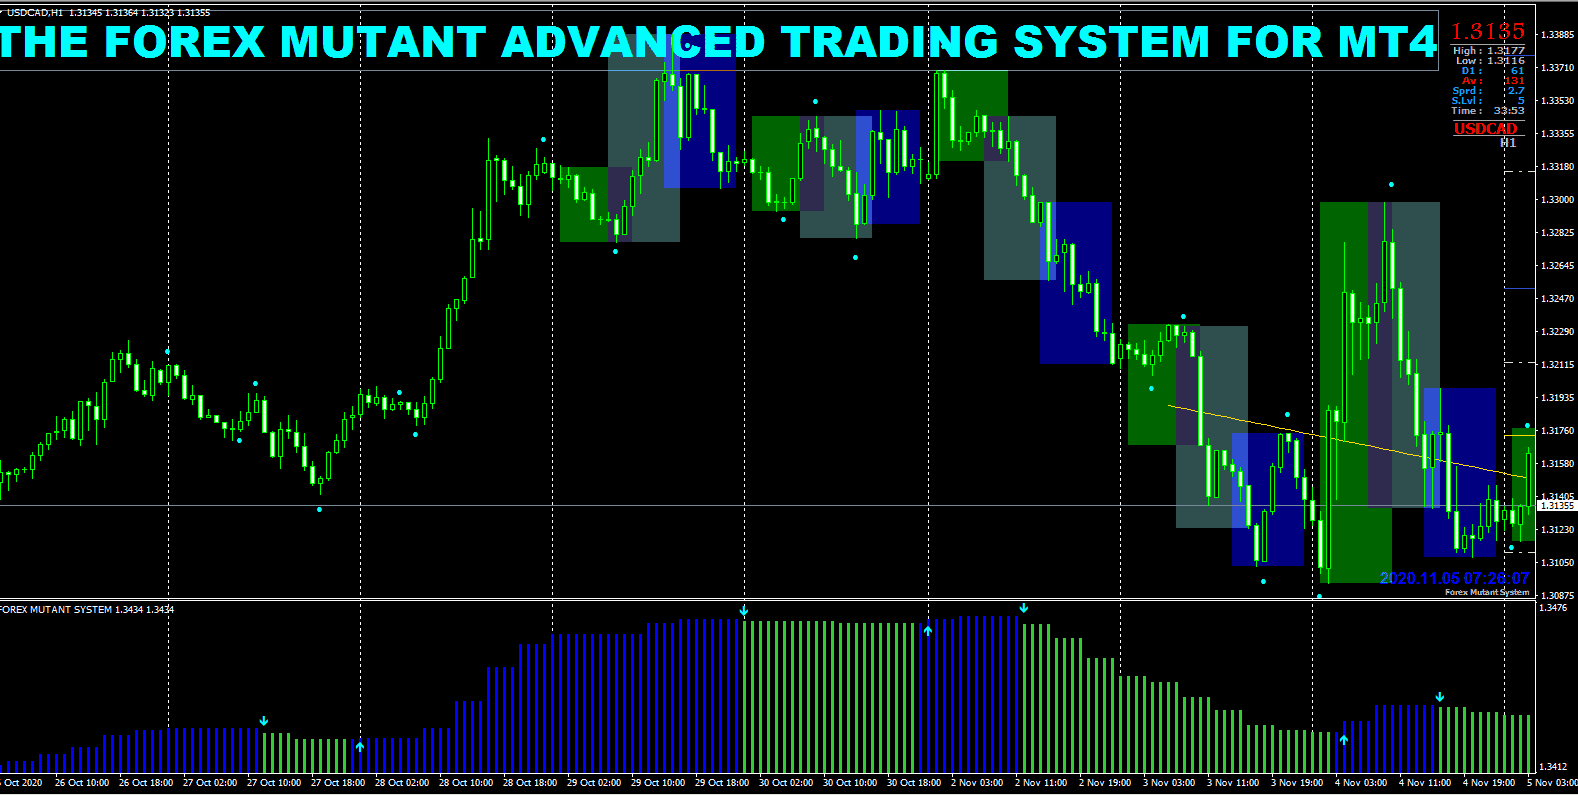 Forex Mutant Advanced Trading System For MT4